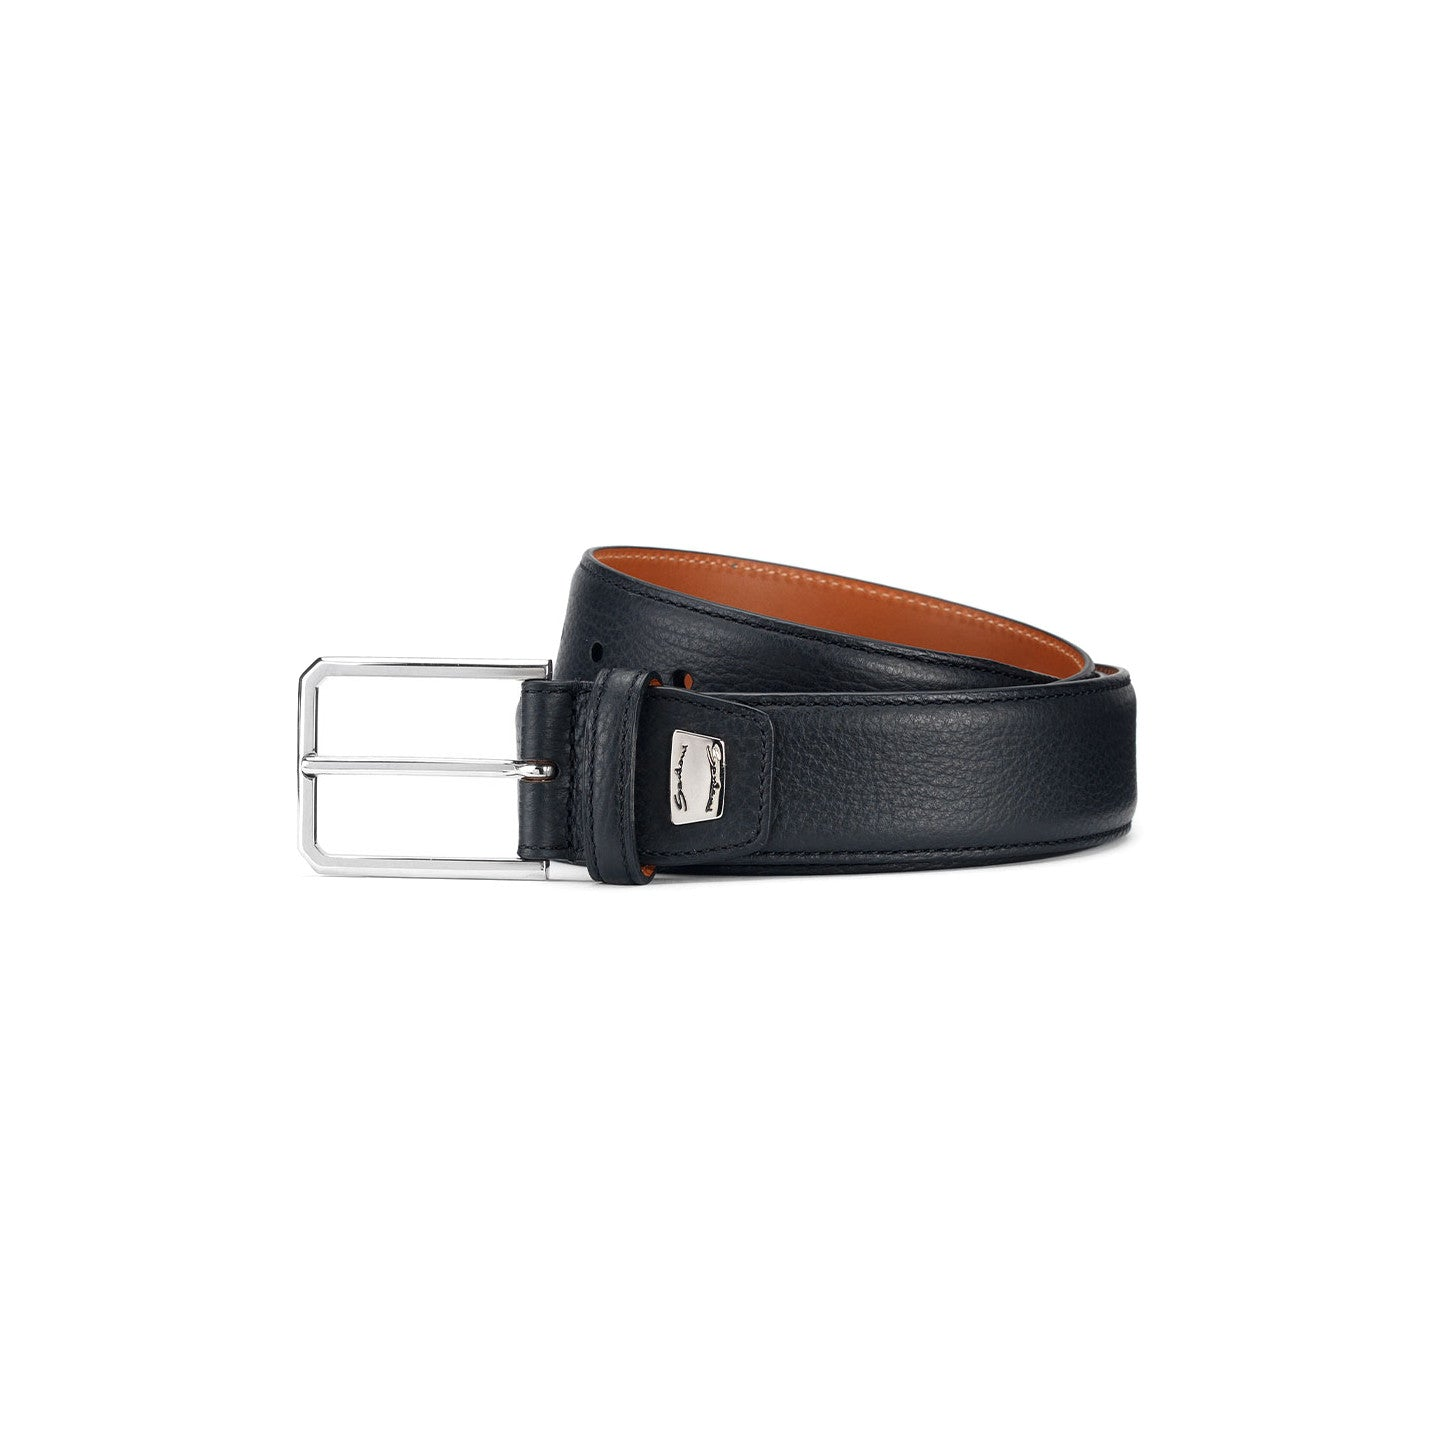 ADJUSTABLE LEATHER-BELT